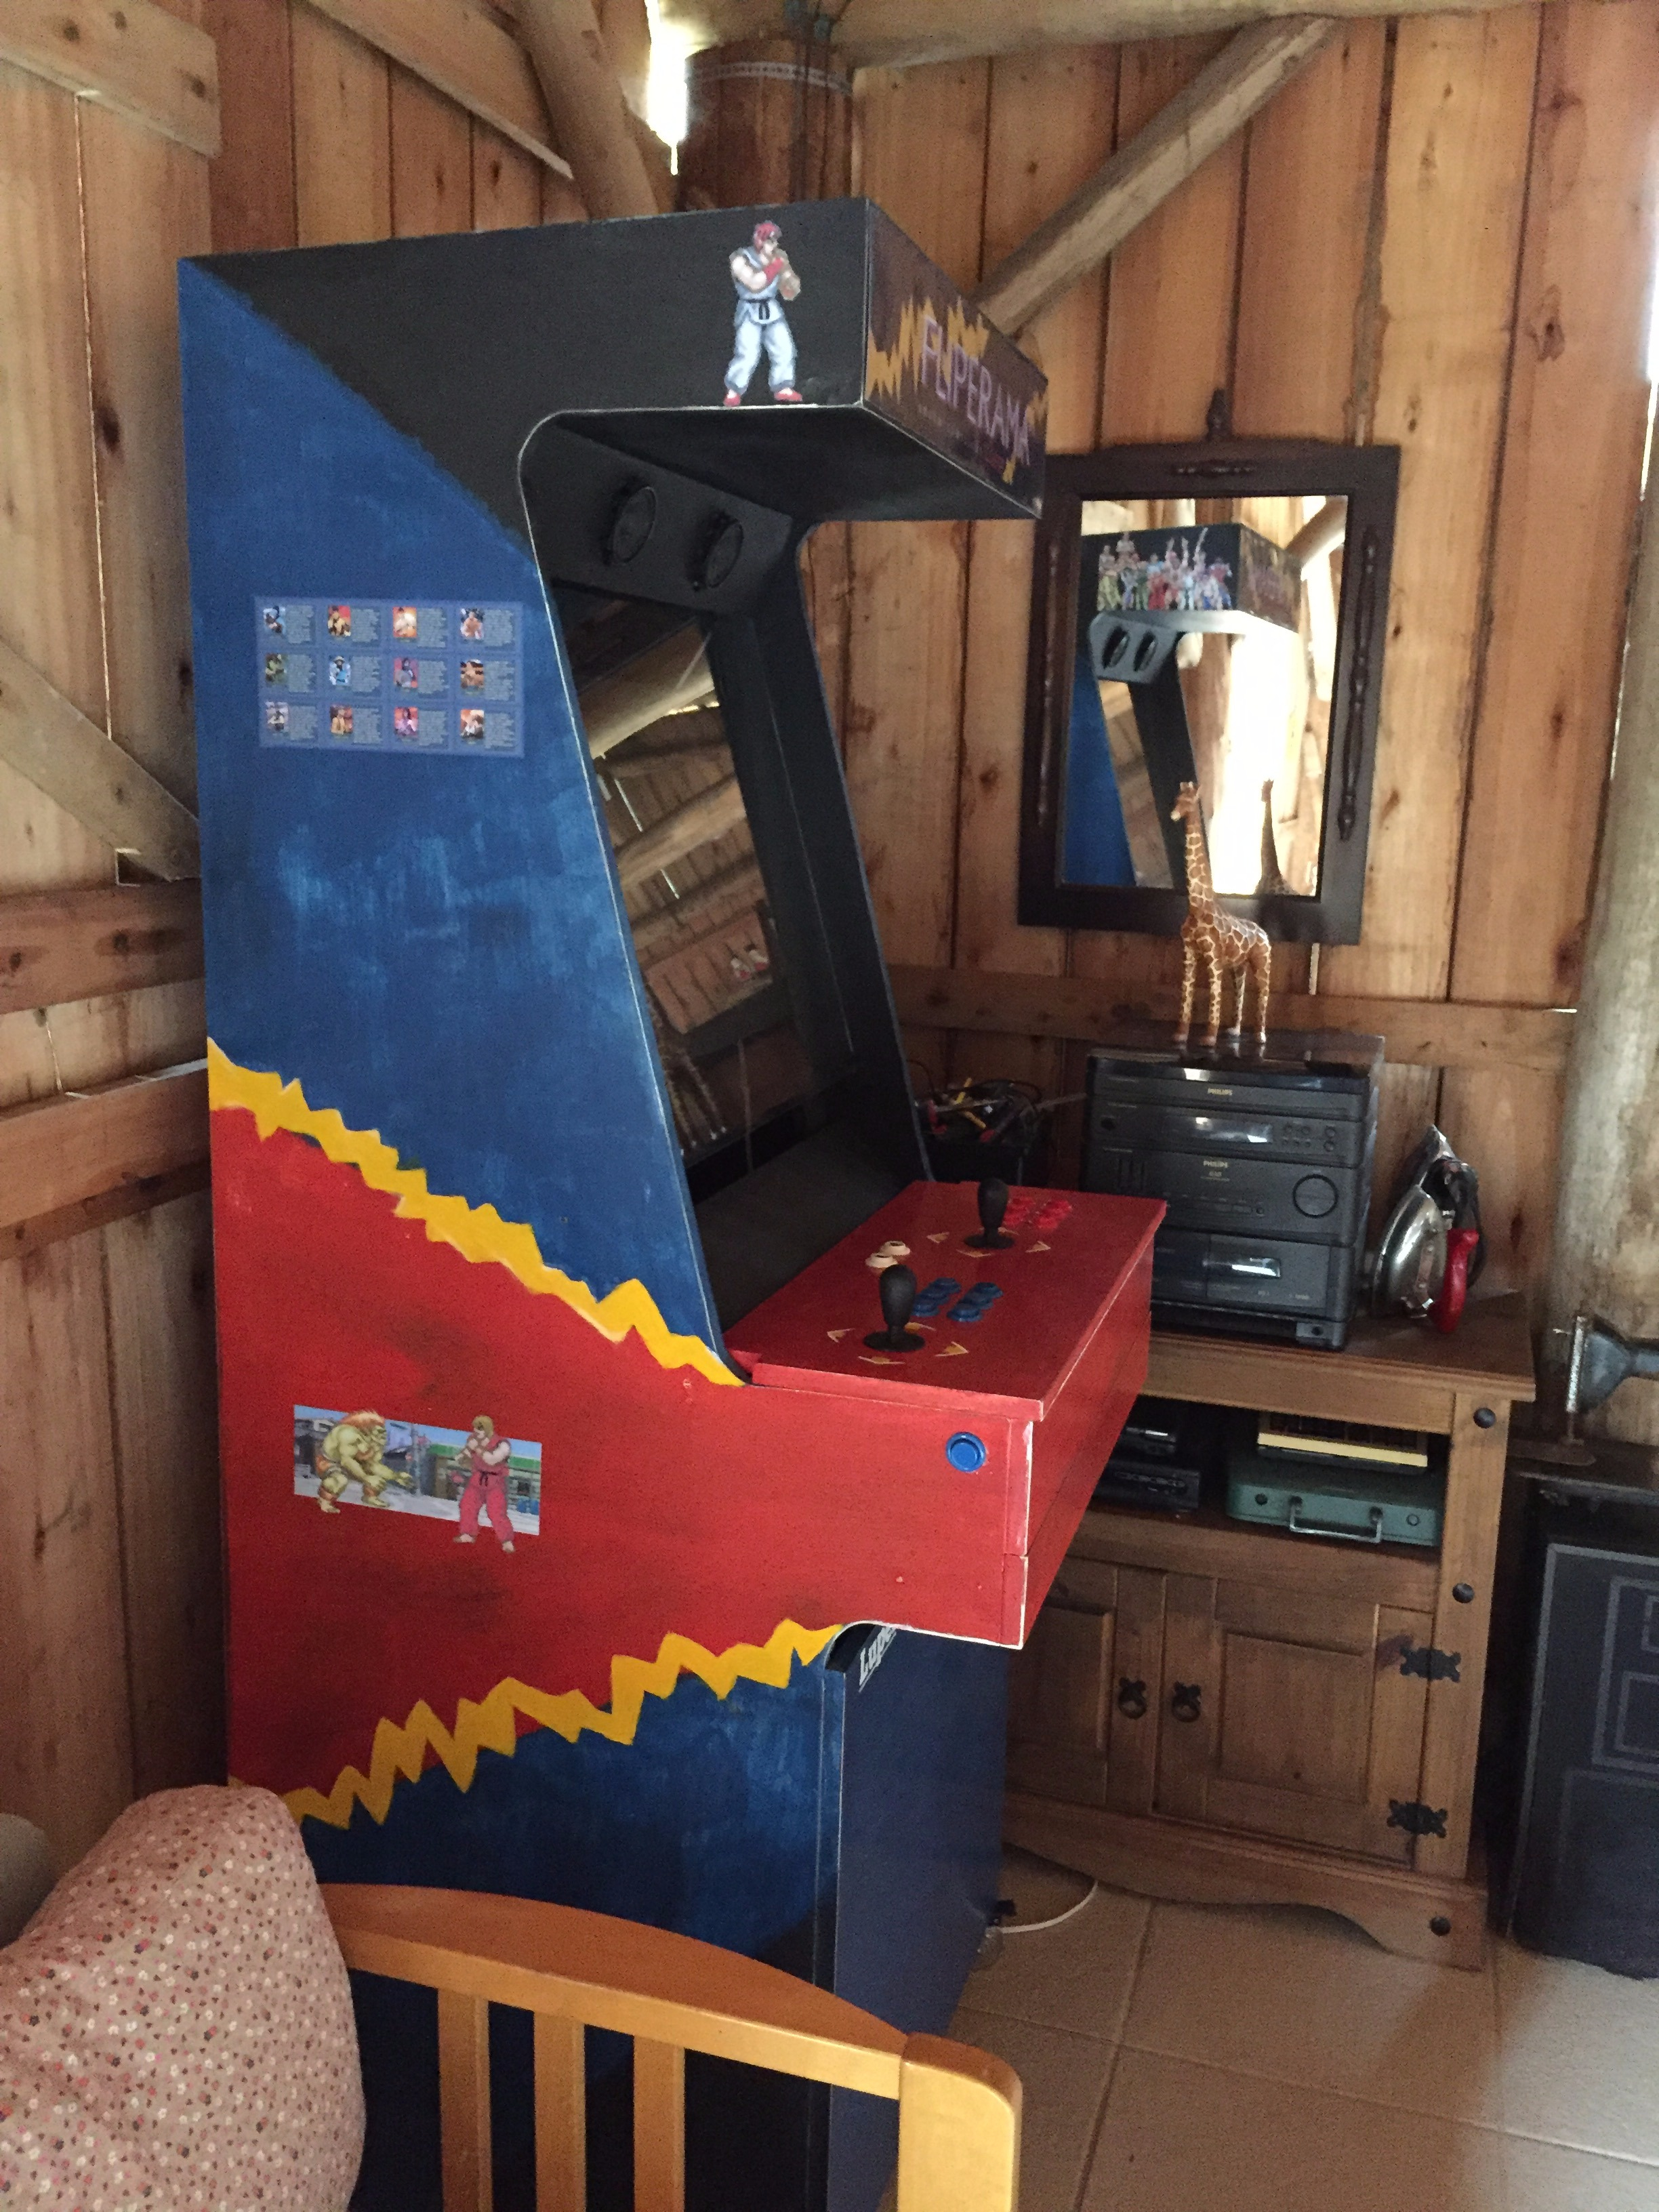 Picture of Arcade With a Old Pc and Vga Tv Monitor